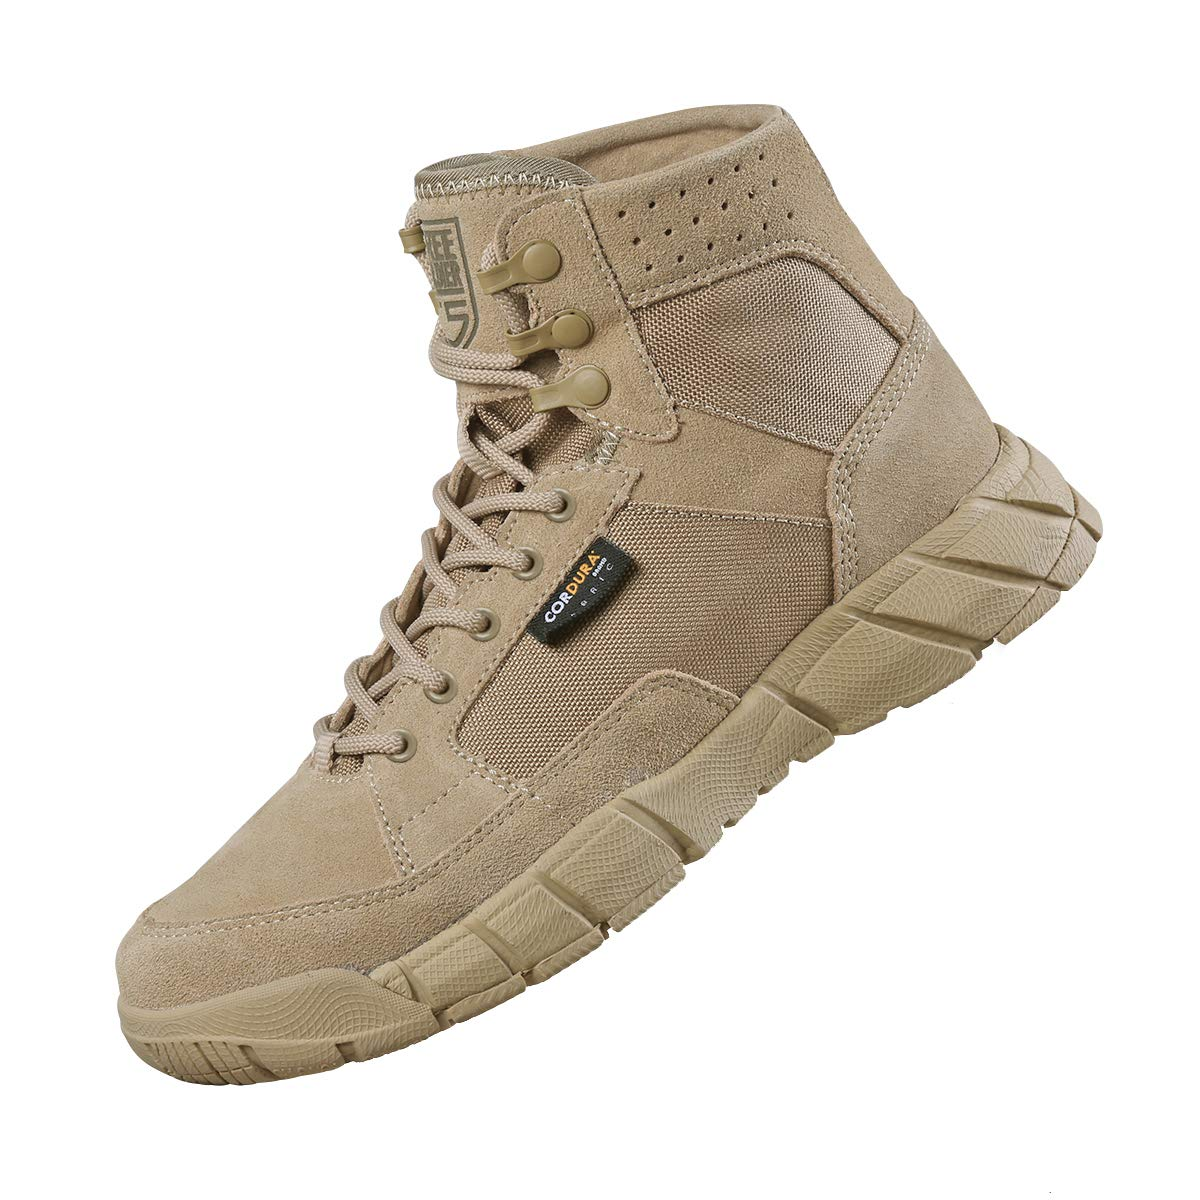 FREE SOLDIER Men's Tactical Boots 6 Inches Summer Lightweight Breathable Desert Boots with Thin Durable Fabric(Tan, 10.5 US) by FREE SOLDIER